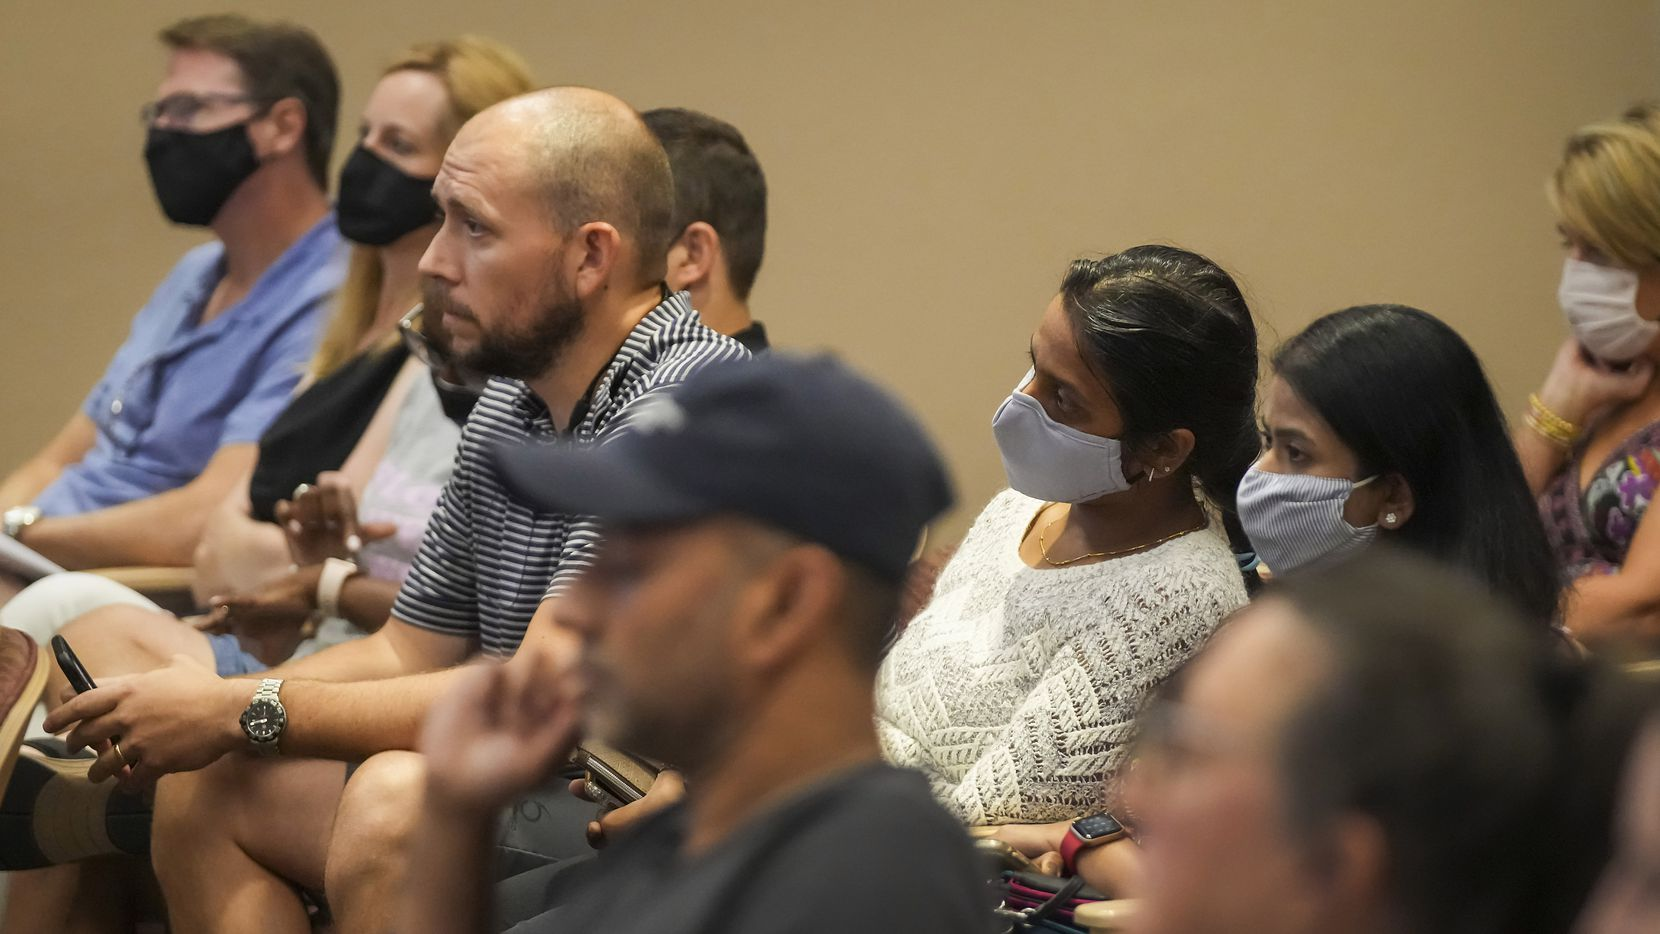 People listen to public comment during the Carroll ISD school board meeting on Monday, Aug. 23, 2021, in Southlake, Texas. (Smiley N. Pool/The Dallas Morning News)